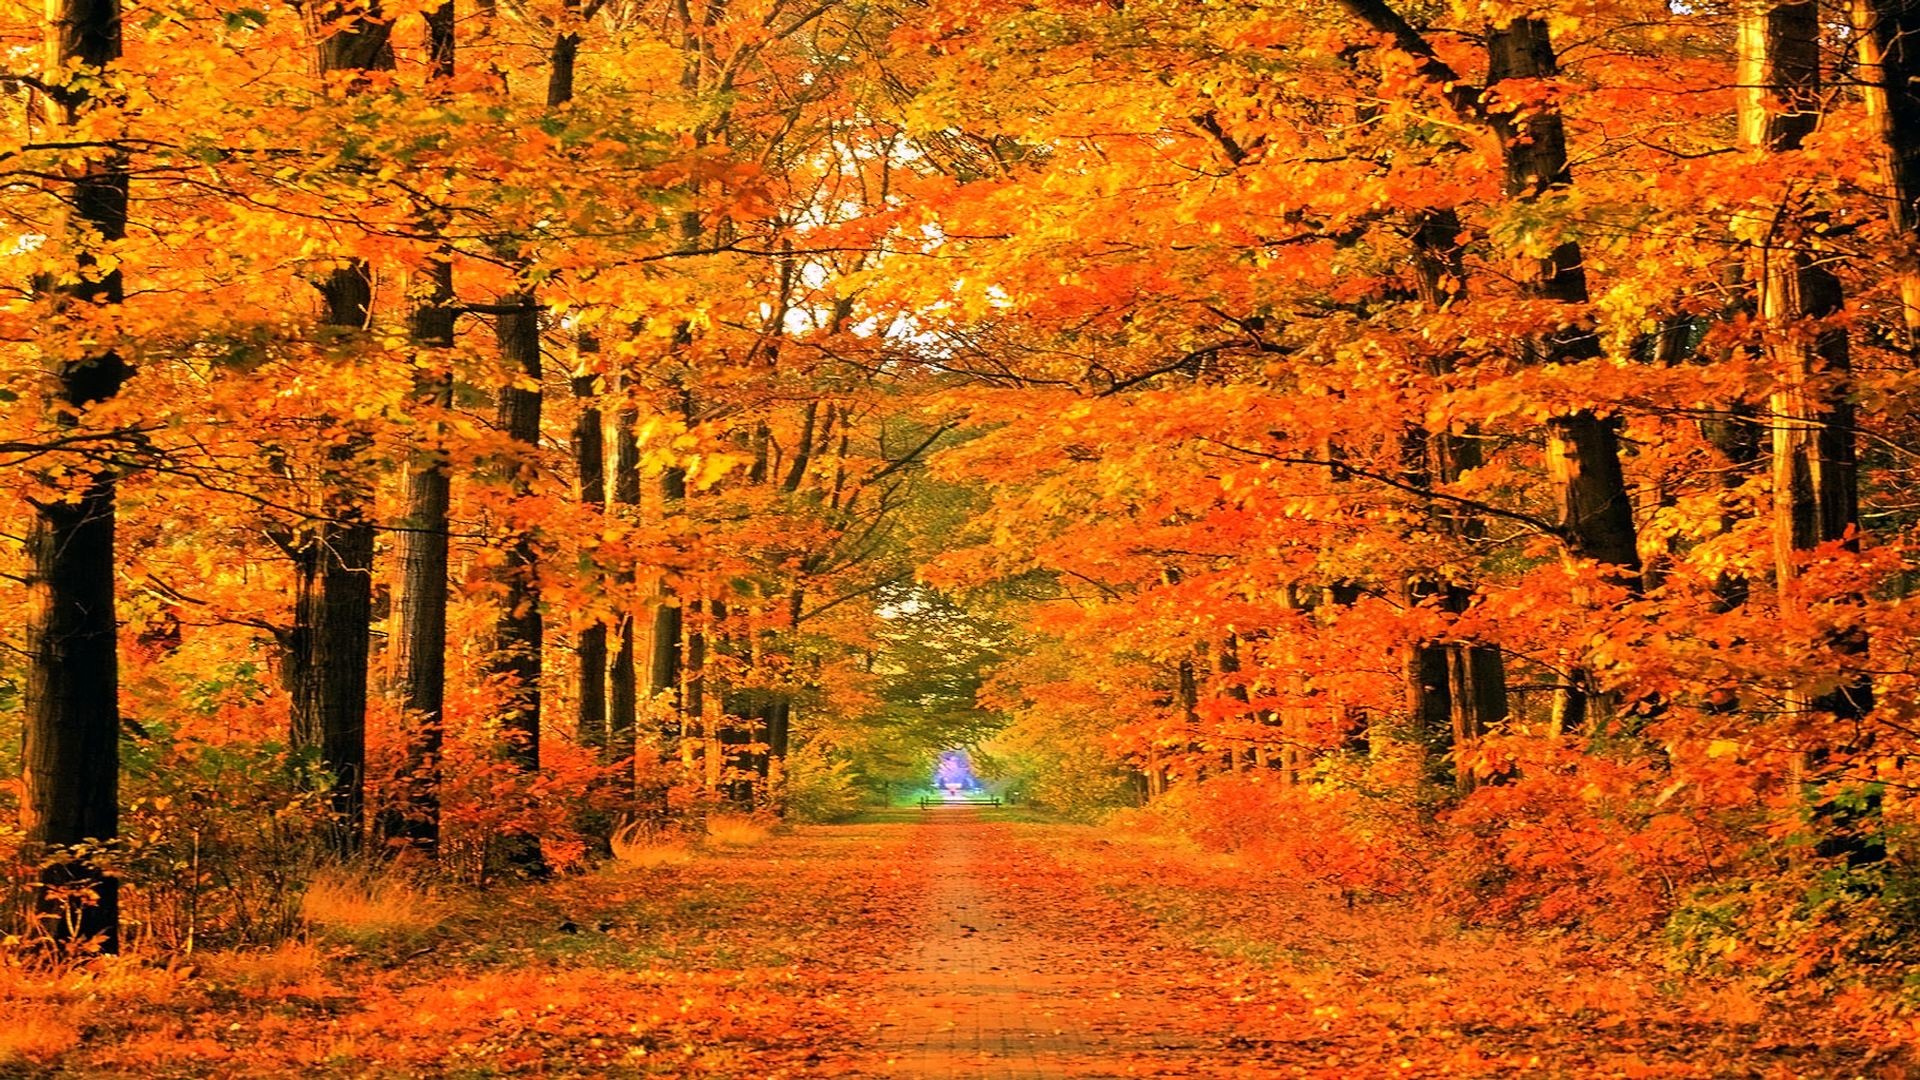 Fall Foliage Wallpaper For Iphone New England Fall Wallpaper 183 ①